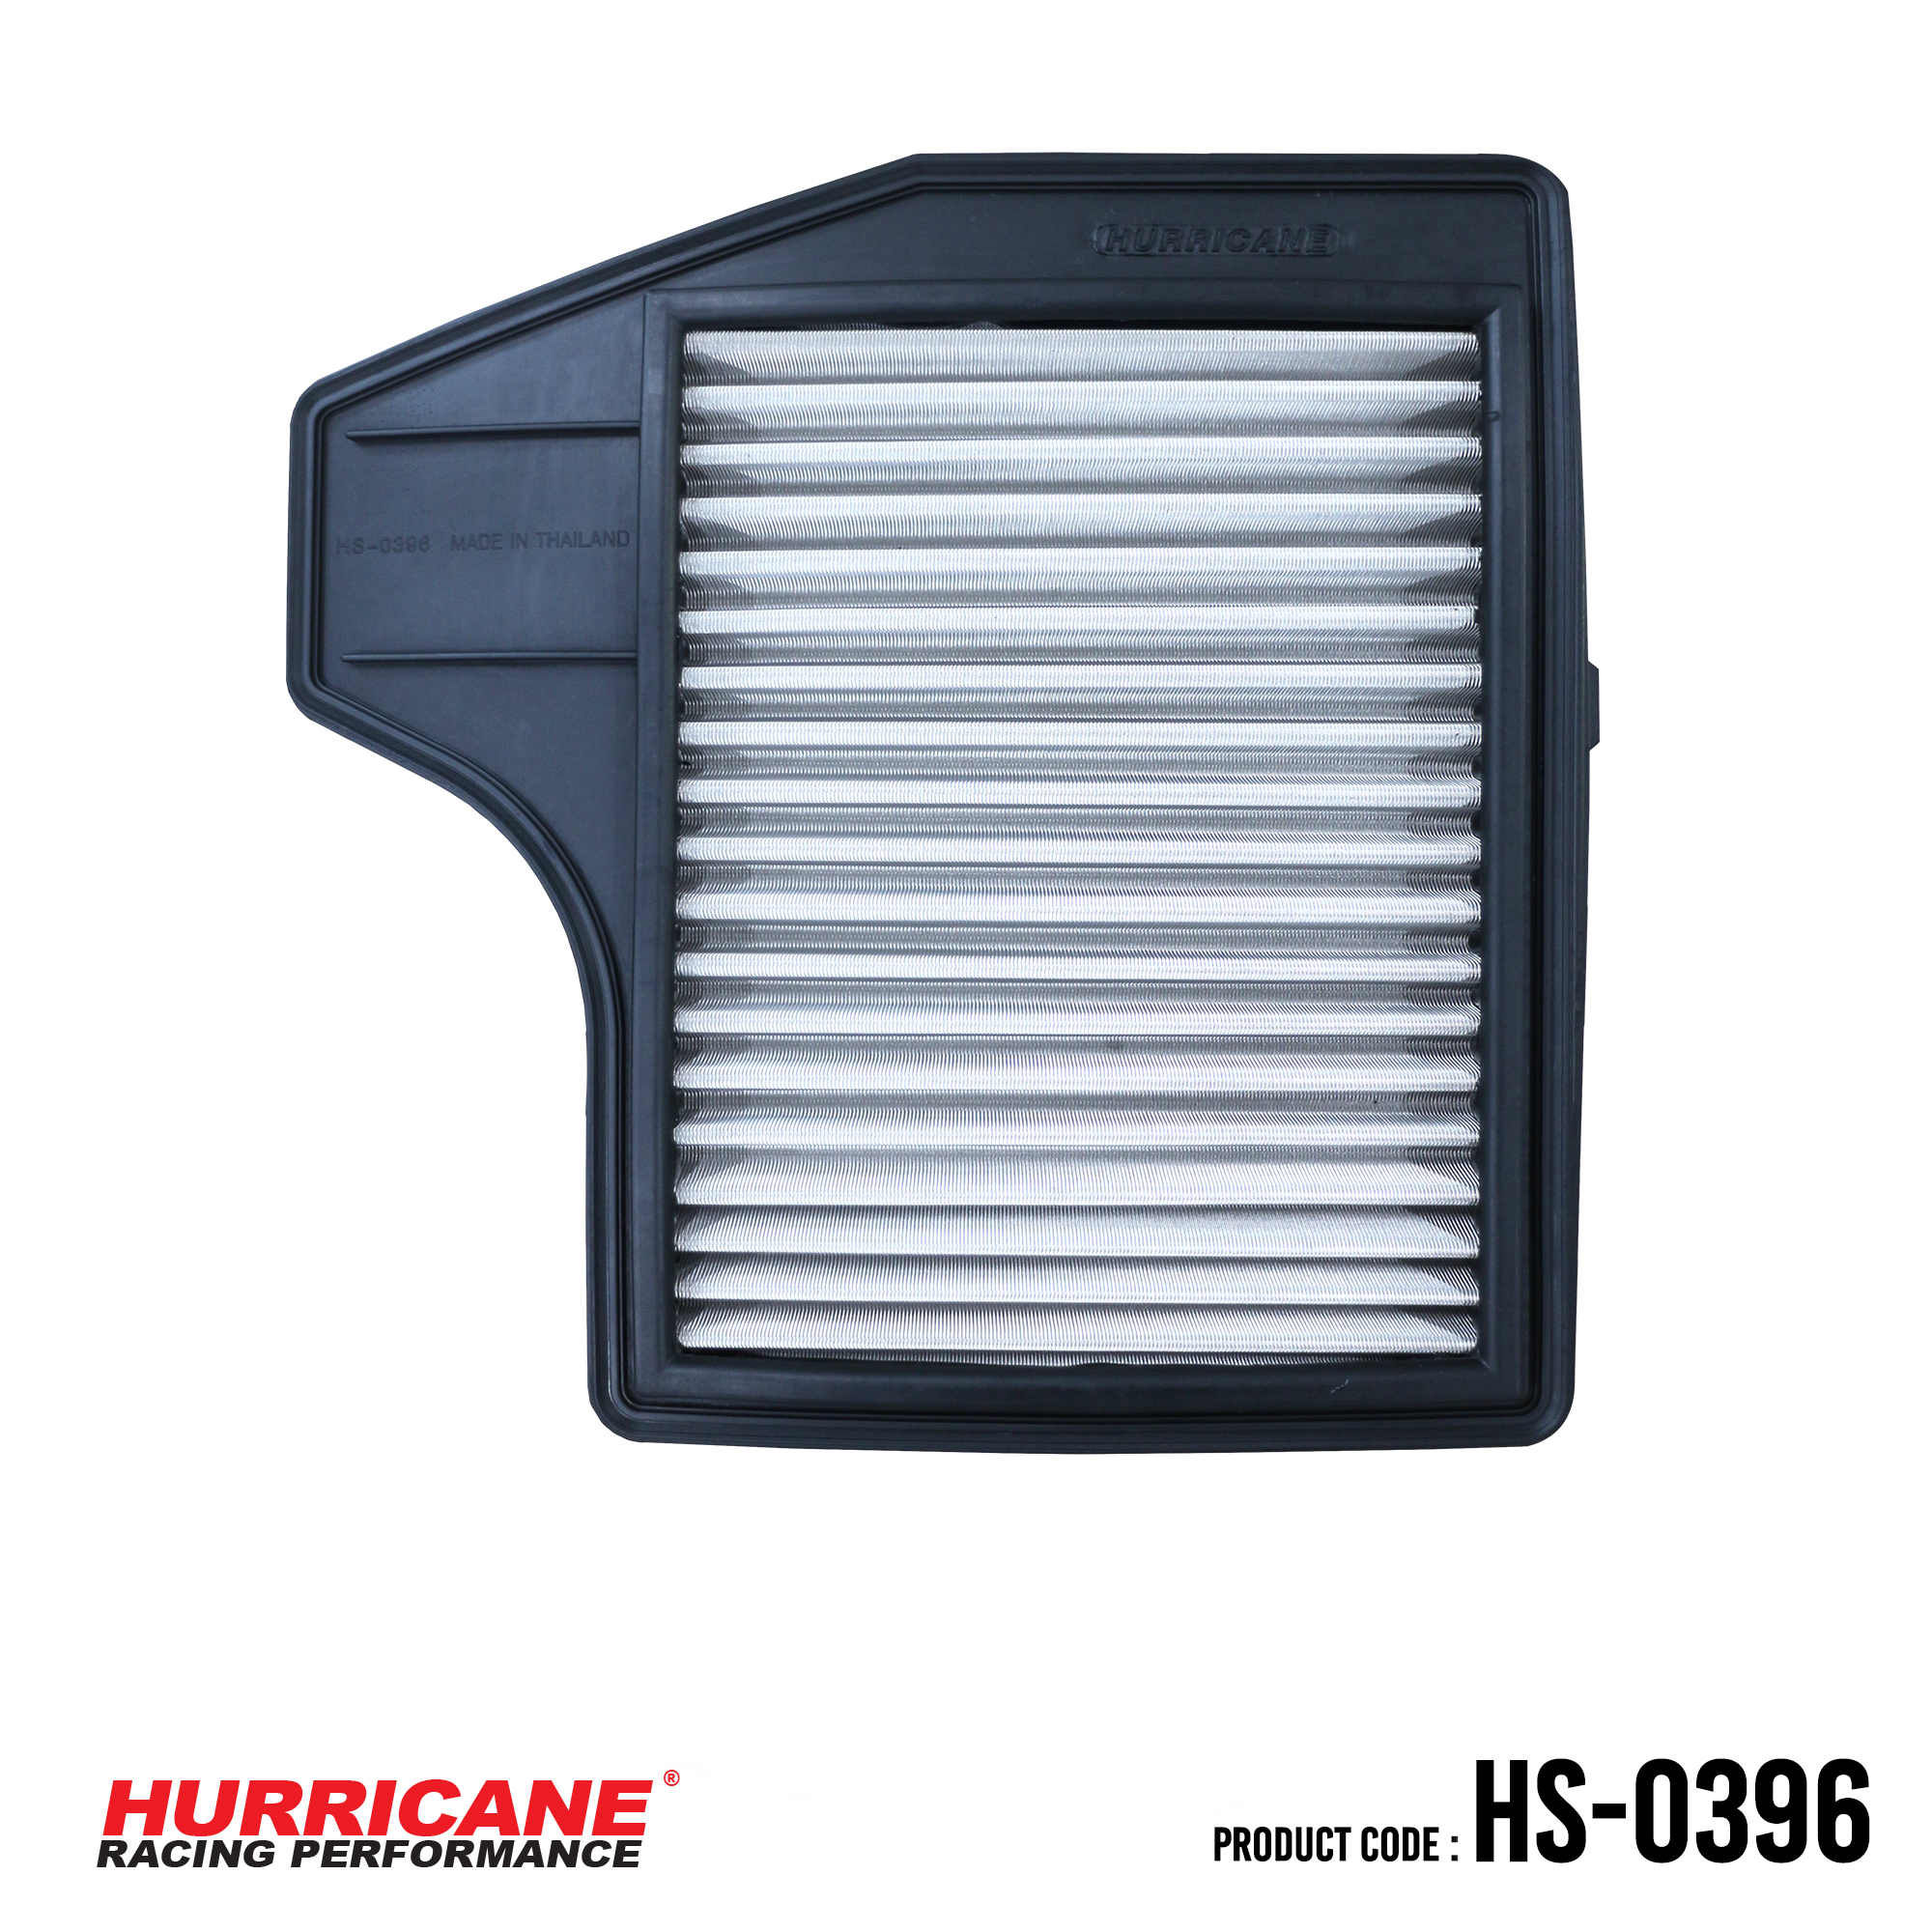 HURRICANE STAINLESS STEEL AIR FILTER FOR HS-0396 Nissan